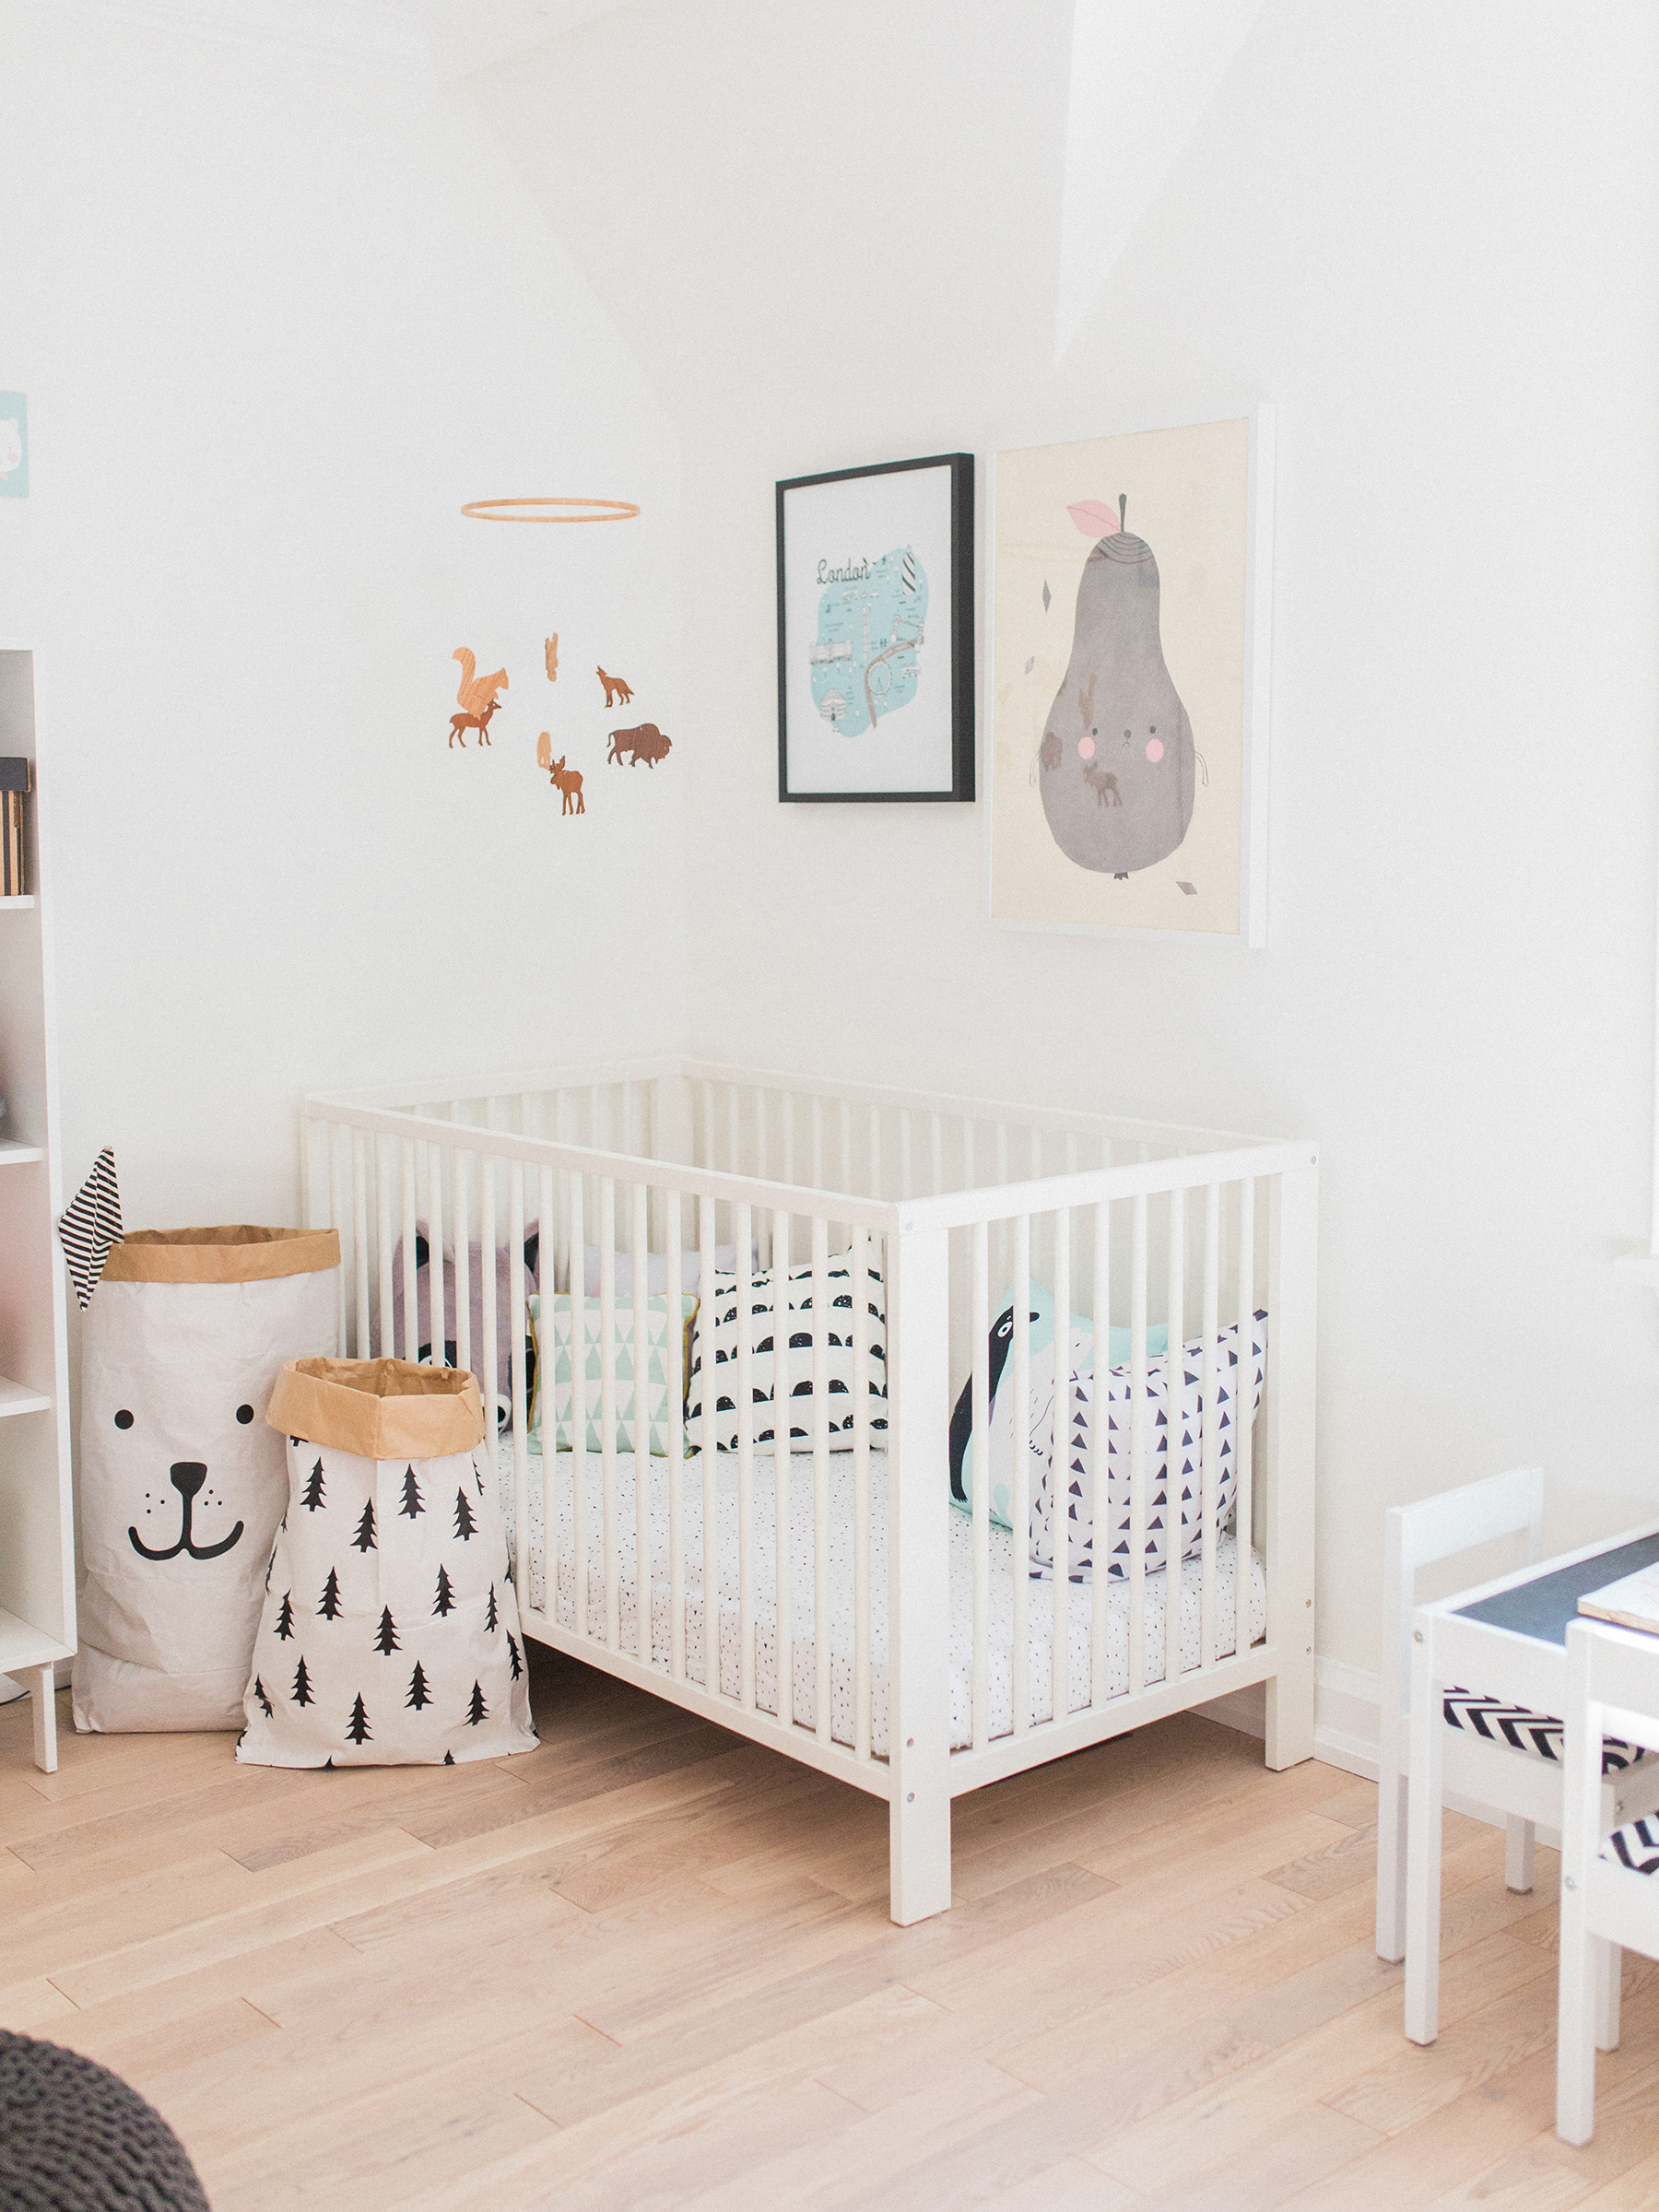 Amelia S Room Toddler Bedroom: A Modern, Pastel Shared Baby And Toddler Room